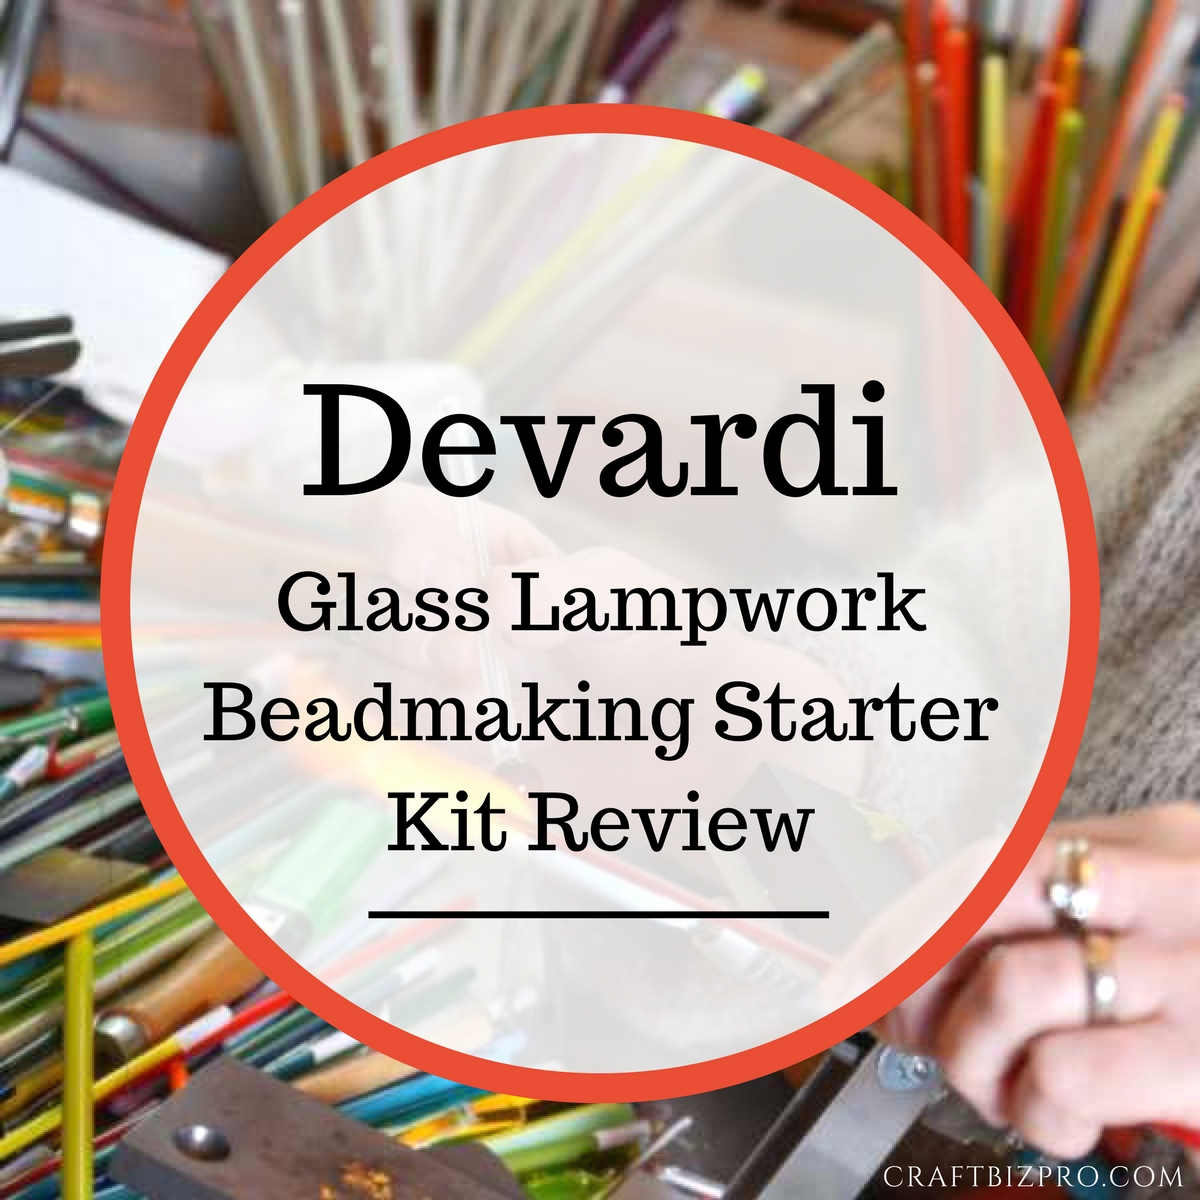 Devardi Glass Lampwork, Beadmaking Starter Kit – Basic Review